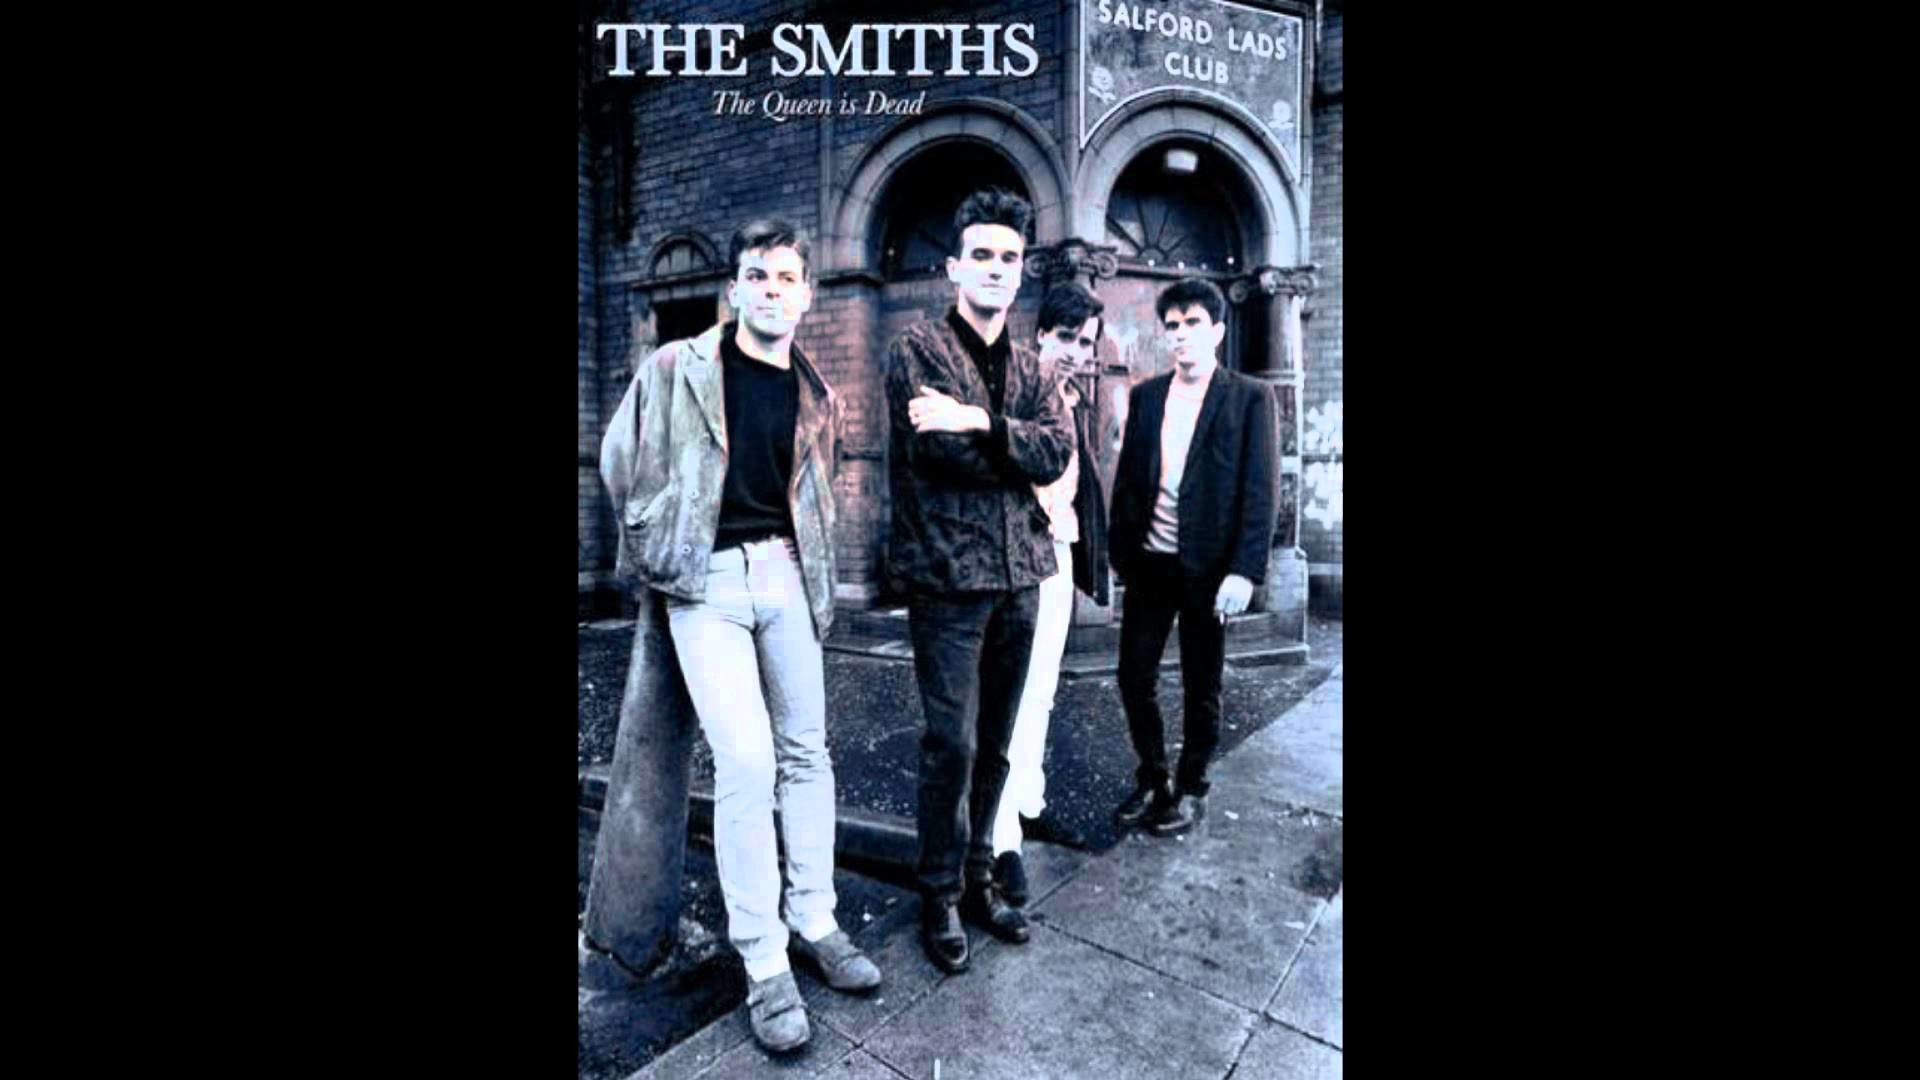 The Smiths – Pretty Girls Make Graves (Troy Tate Version) HD